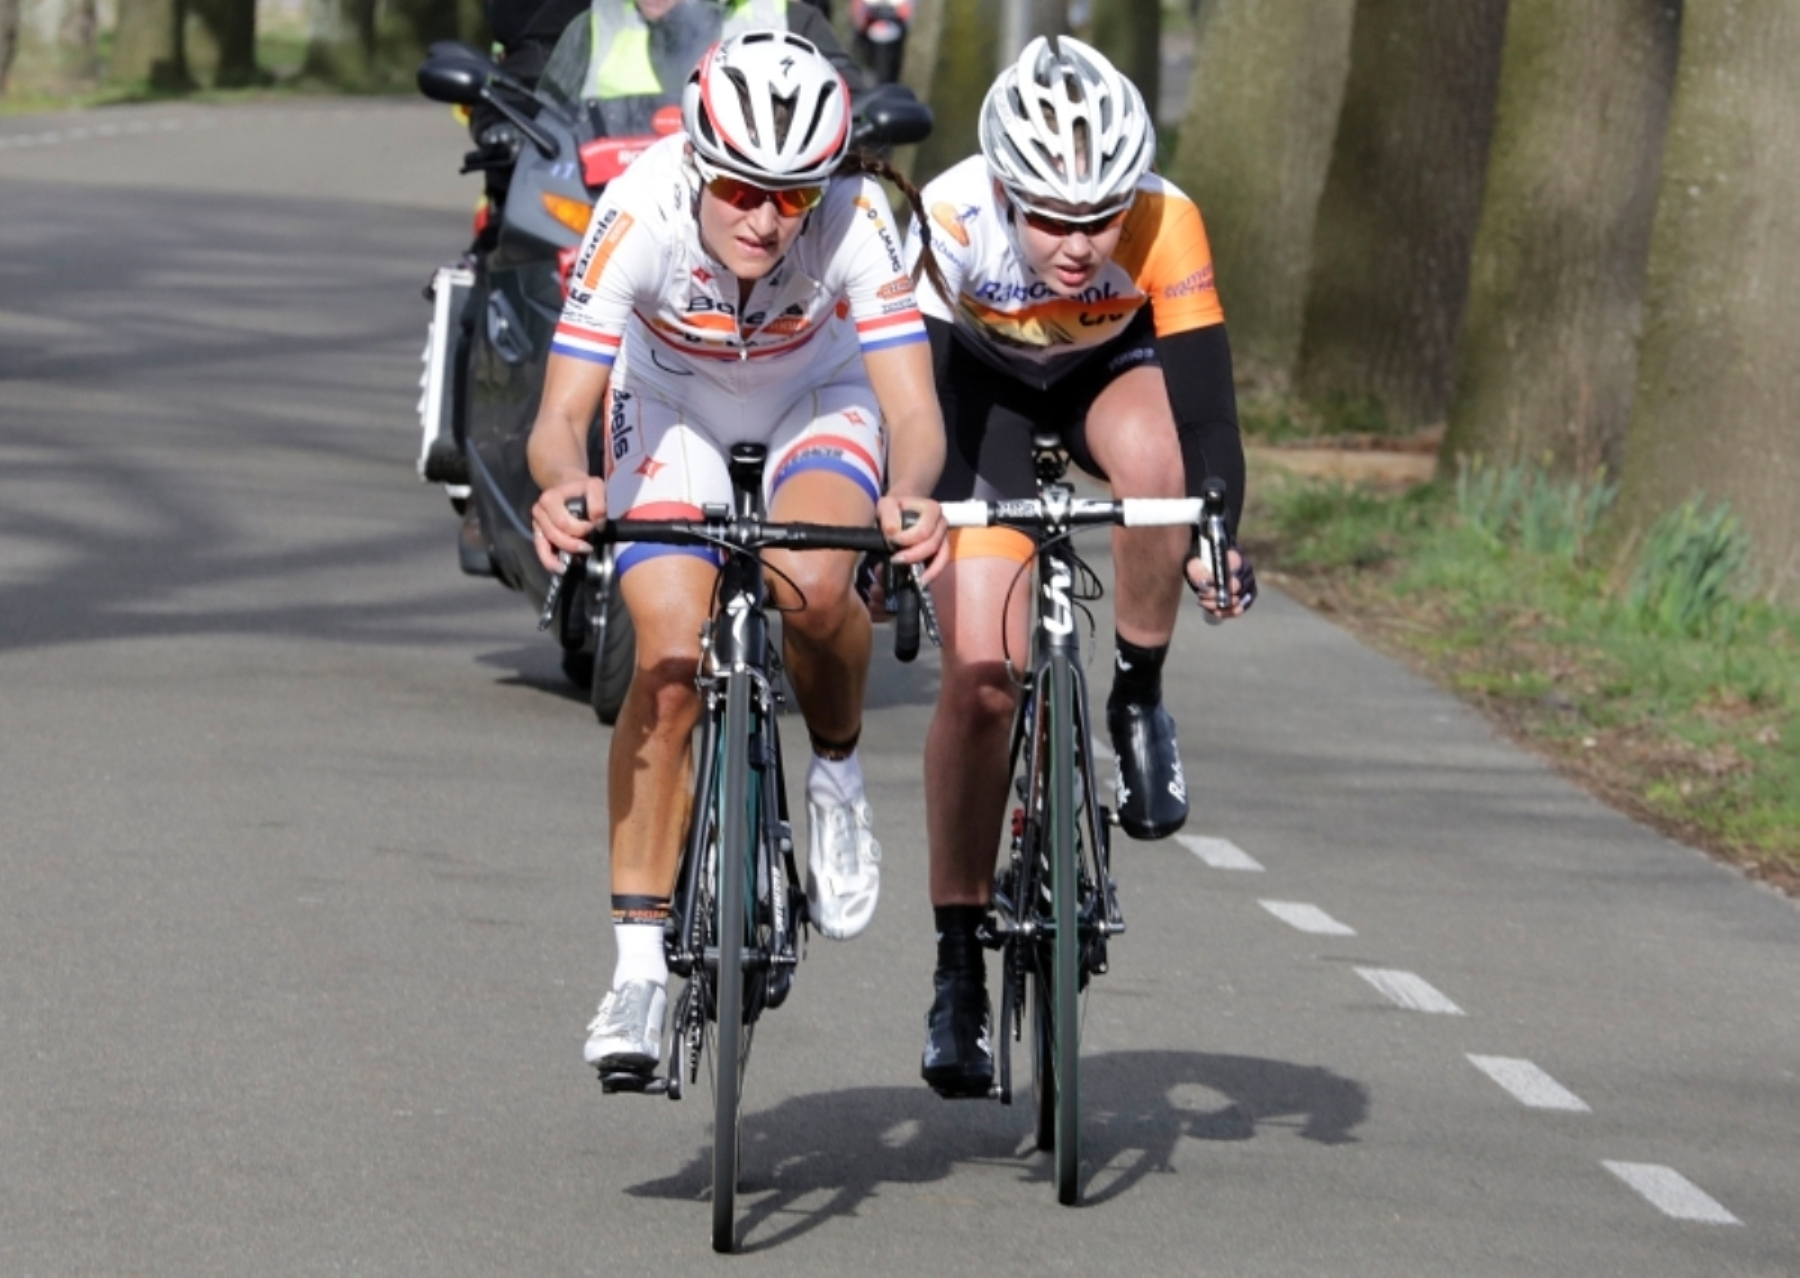 Armitstead and Thwaites in Commonwealth Games cycling team